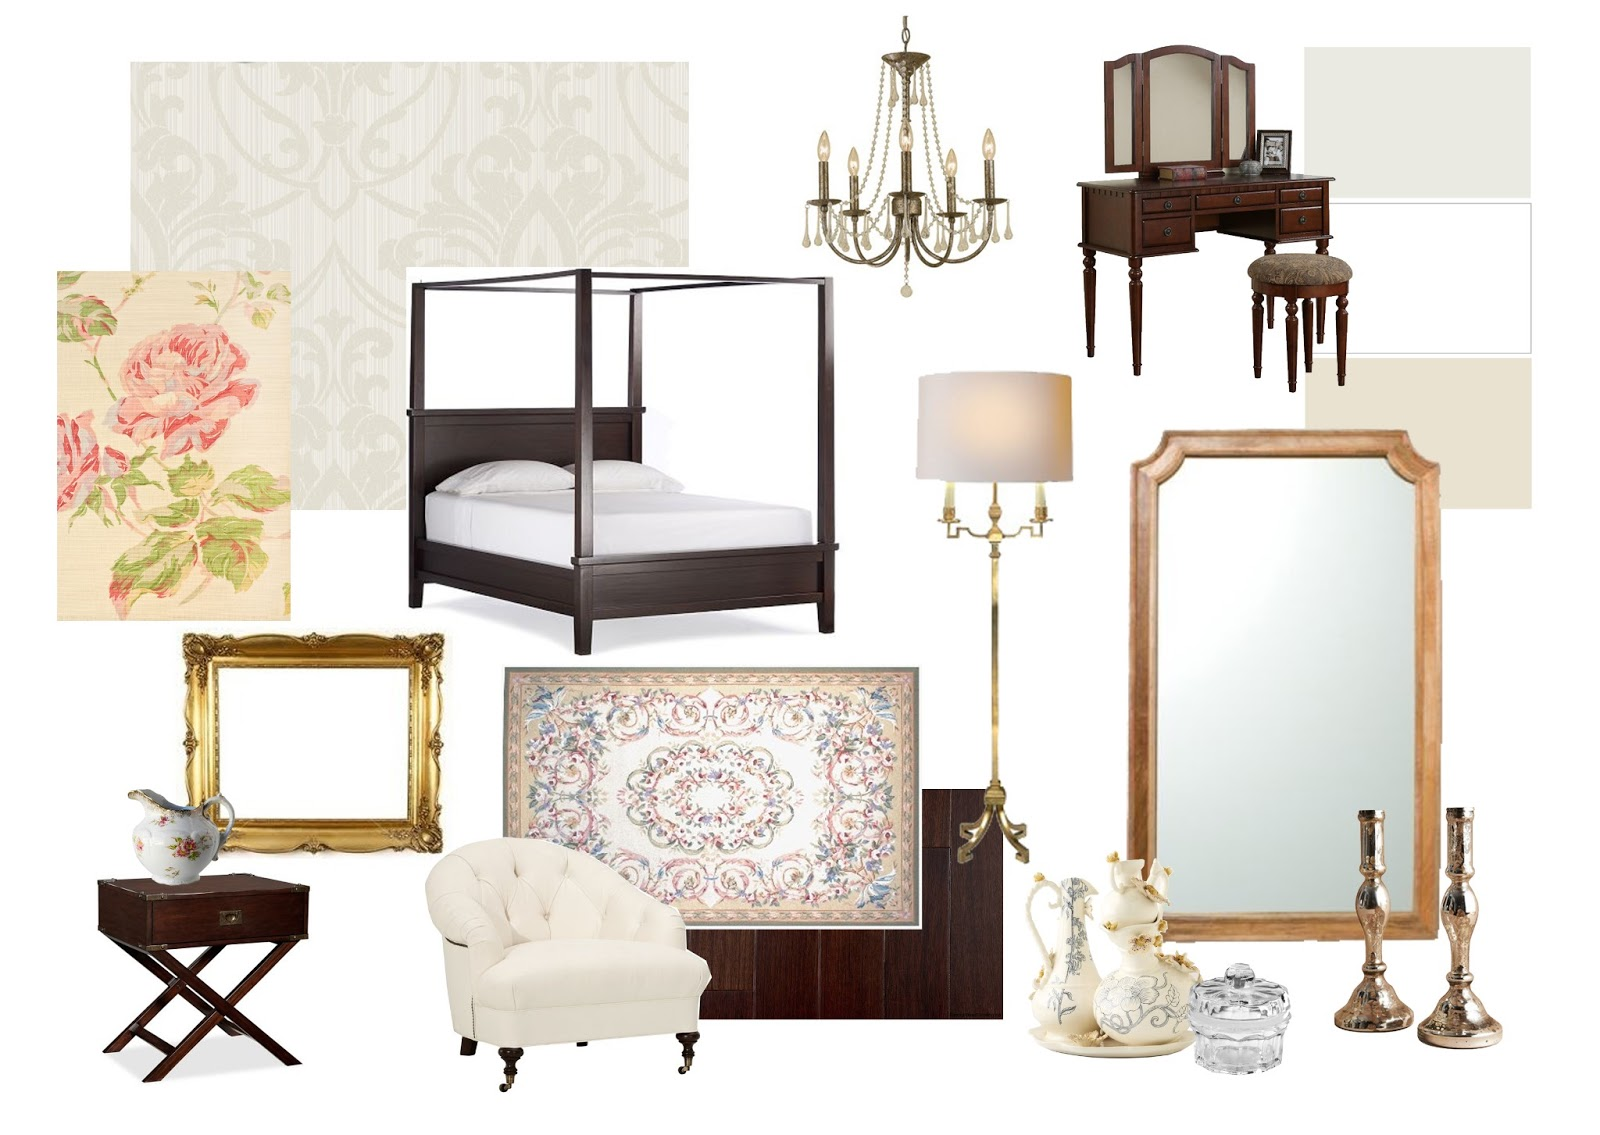 Downton Abbey Bedrooms